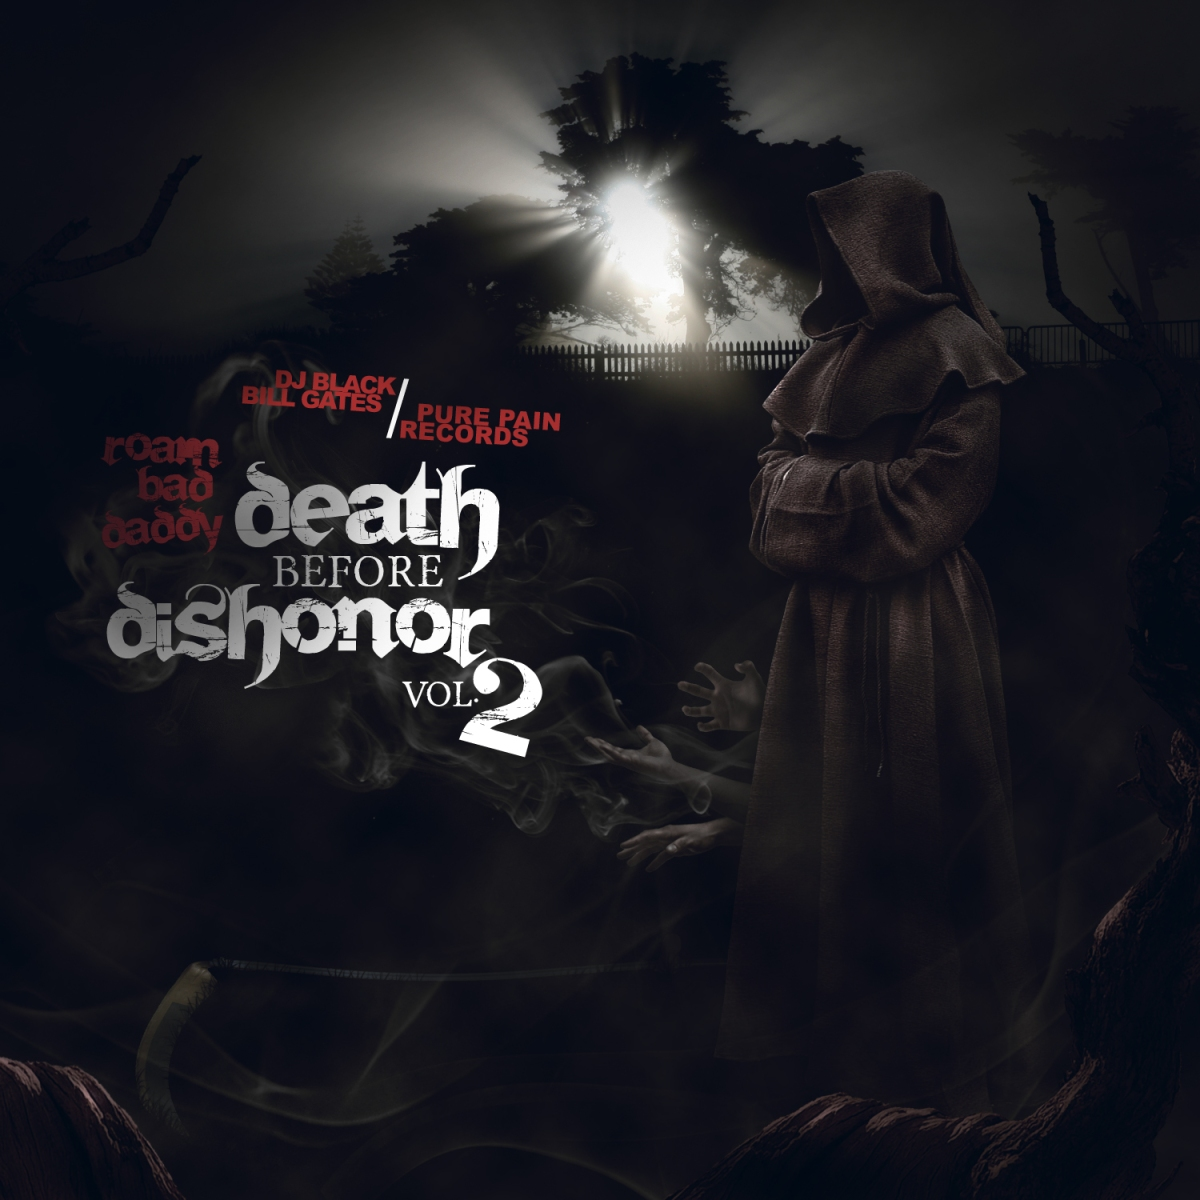 Roam Bad Daddy - Death Before Dishonor 2 (Hosted by DJ Black Bill Gates)